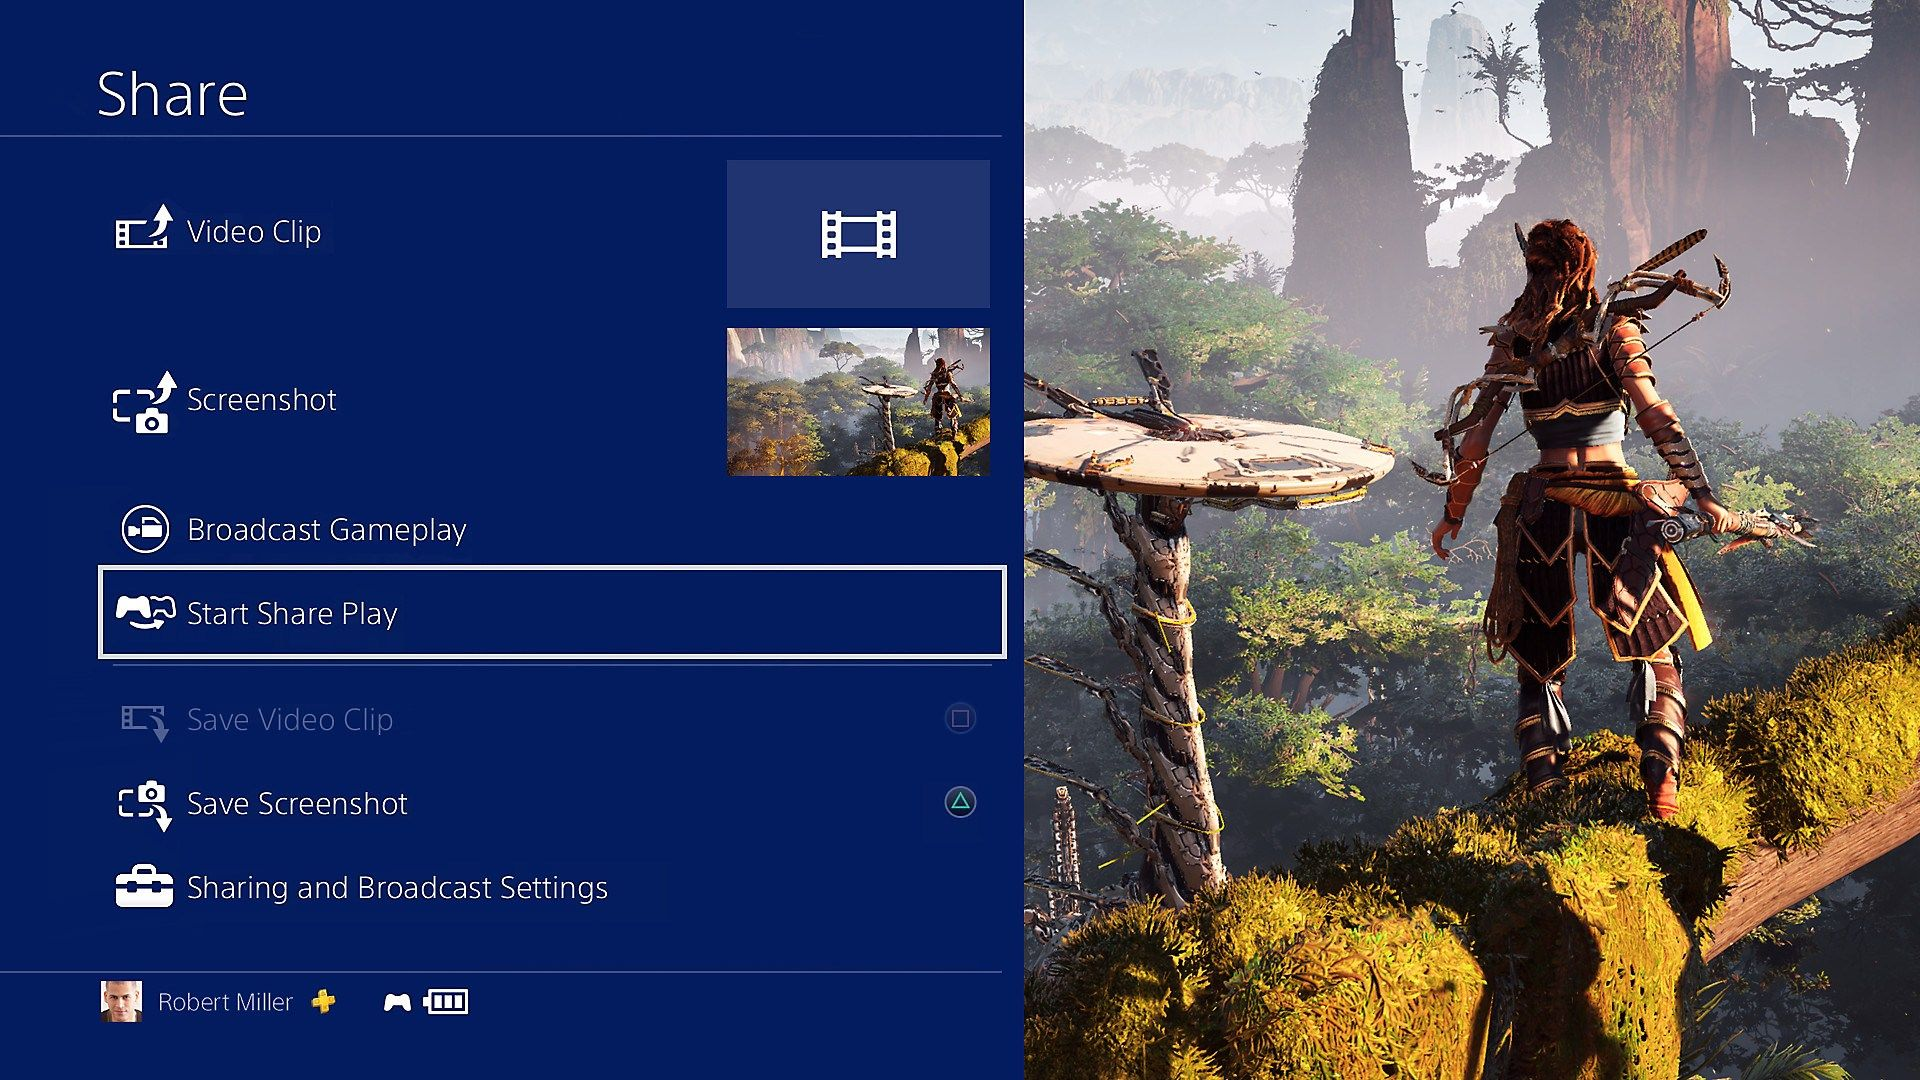 [ANSWER] Do You Have To Pay To Play Online On PS4 Play